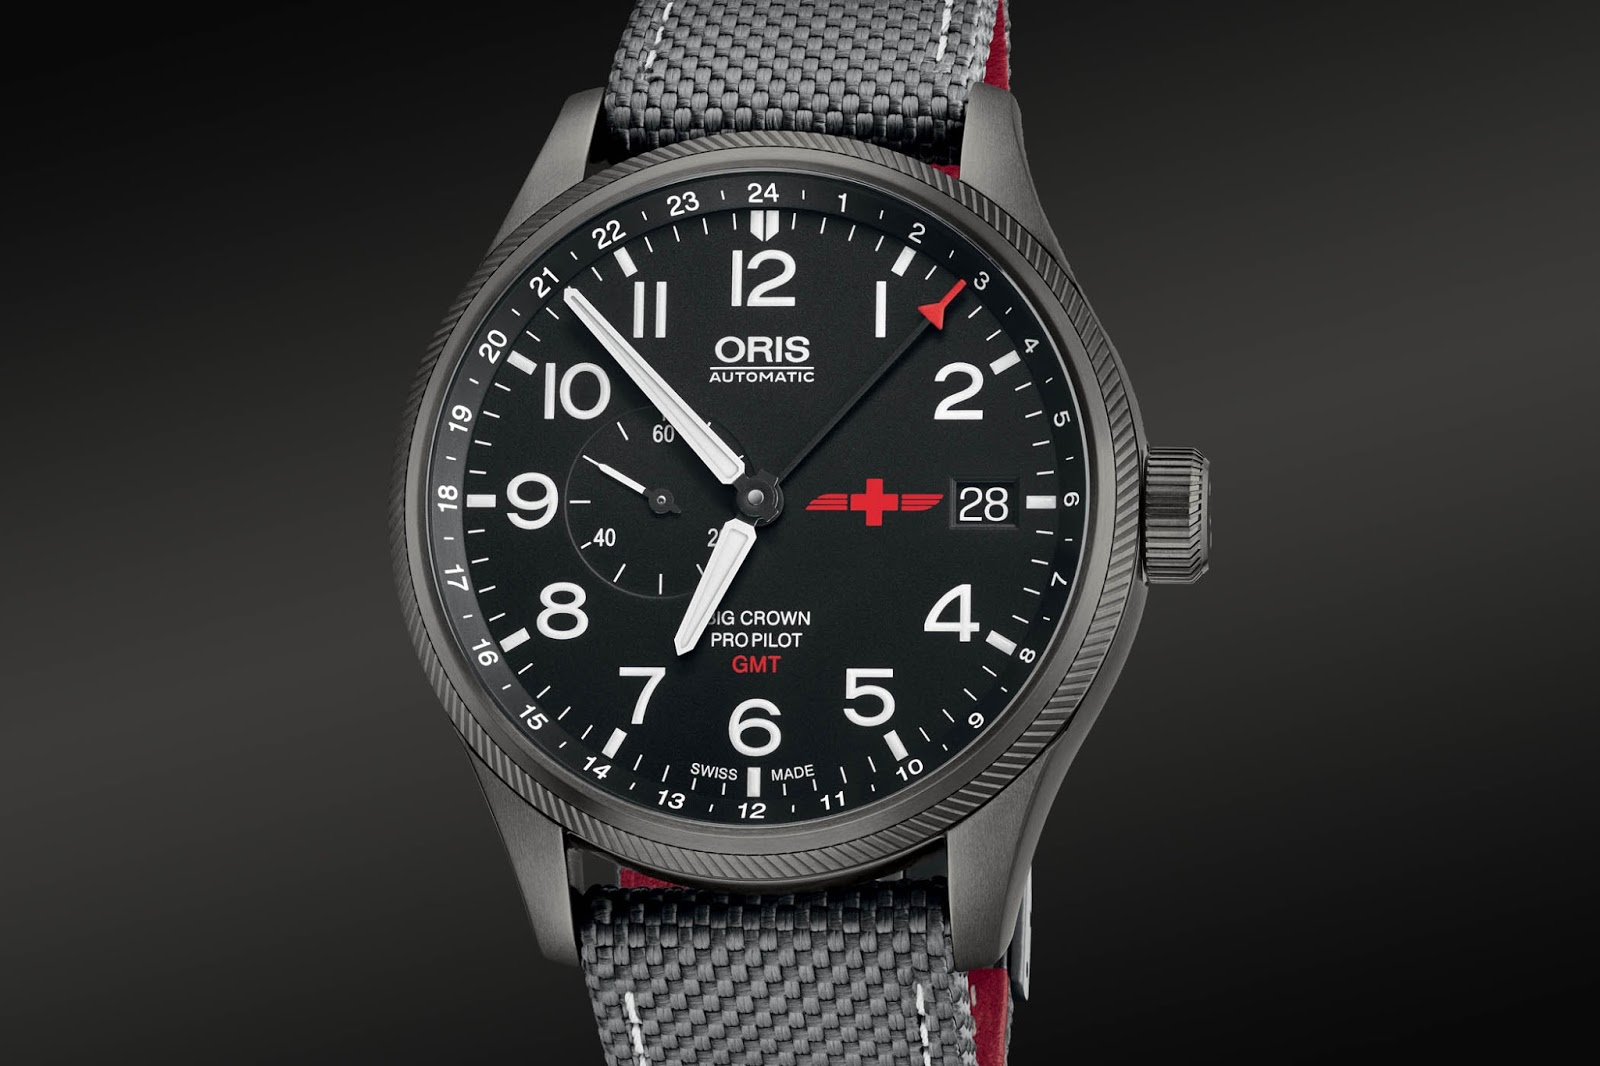 Oris-GMT-Rega-Limited-Edition-5.jpg